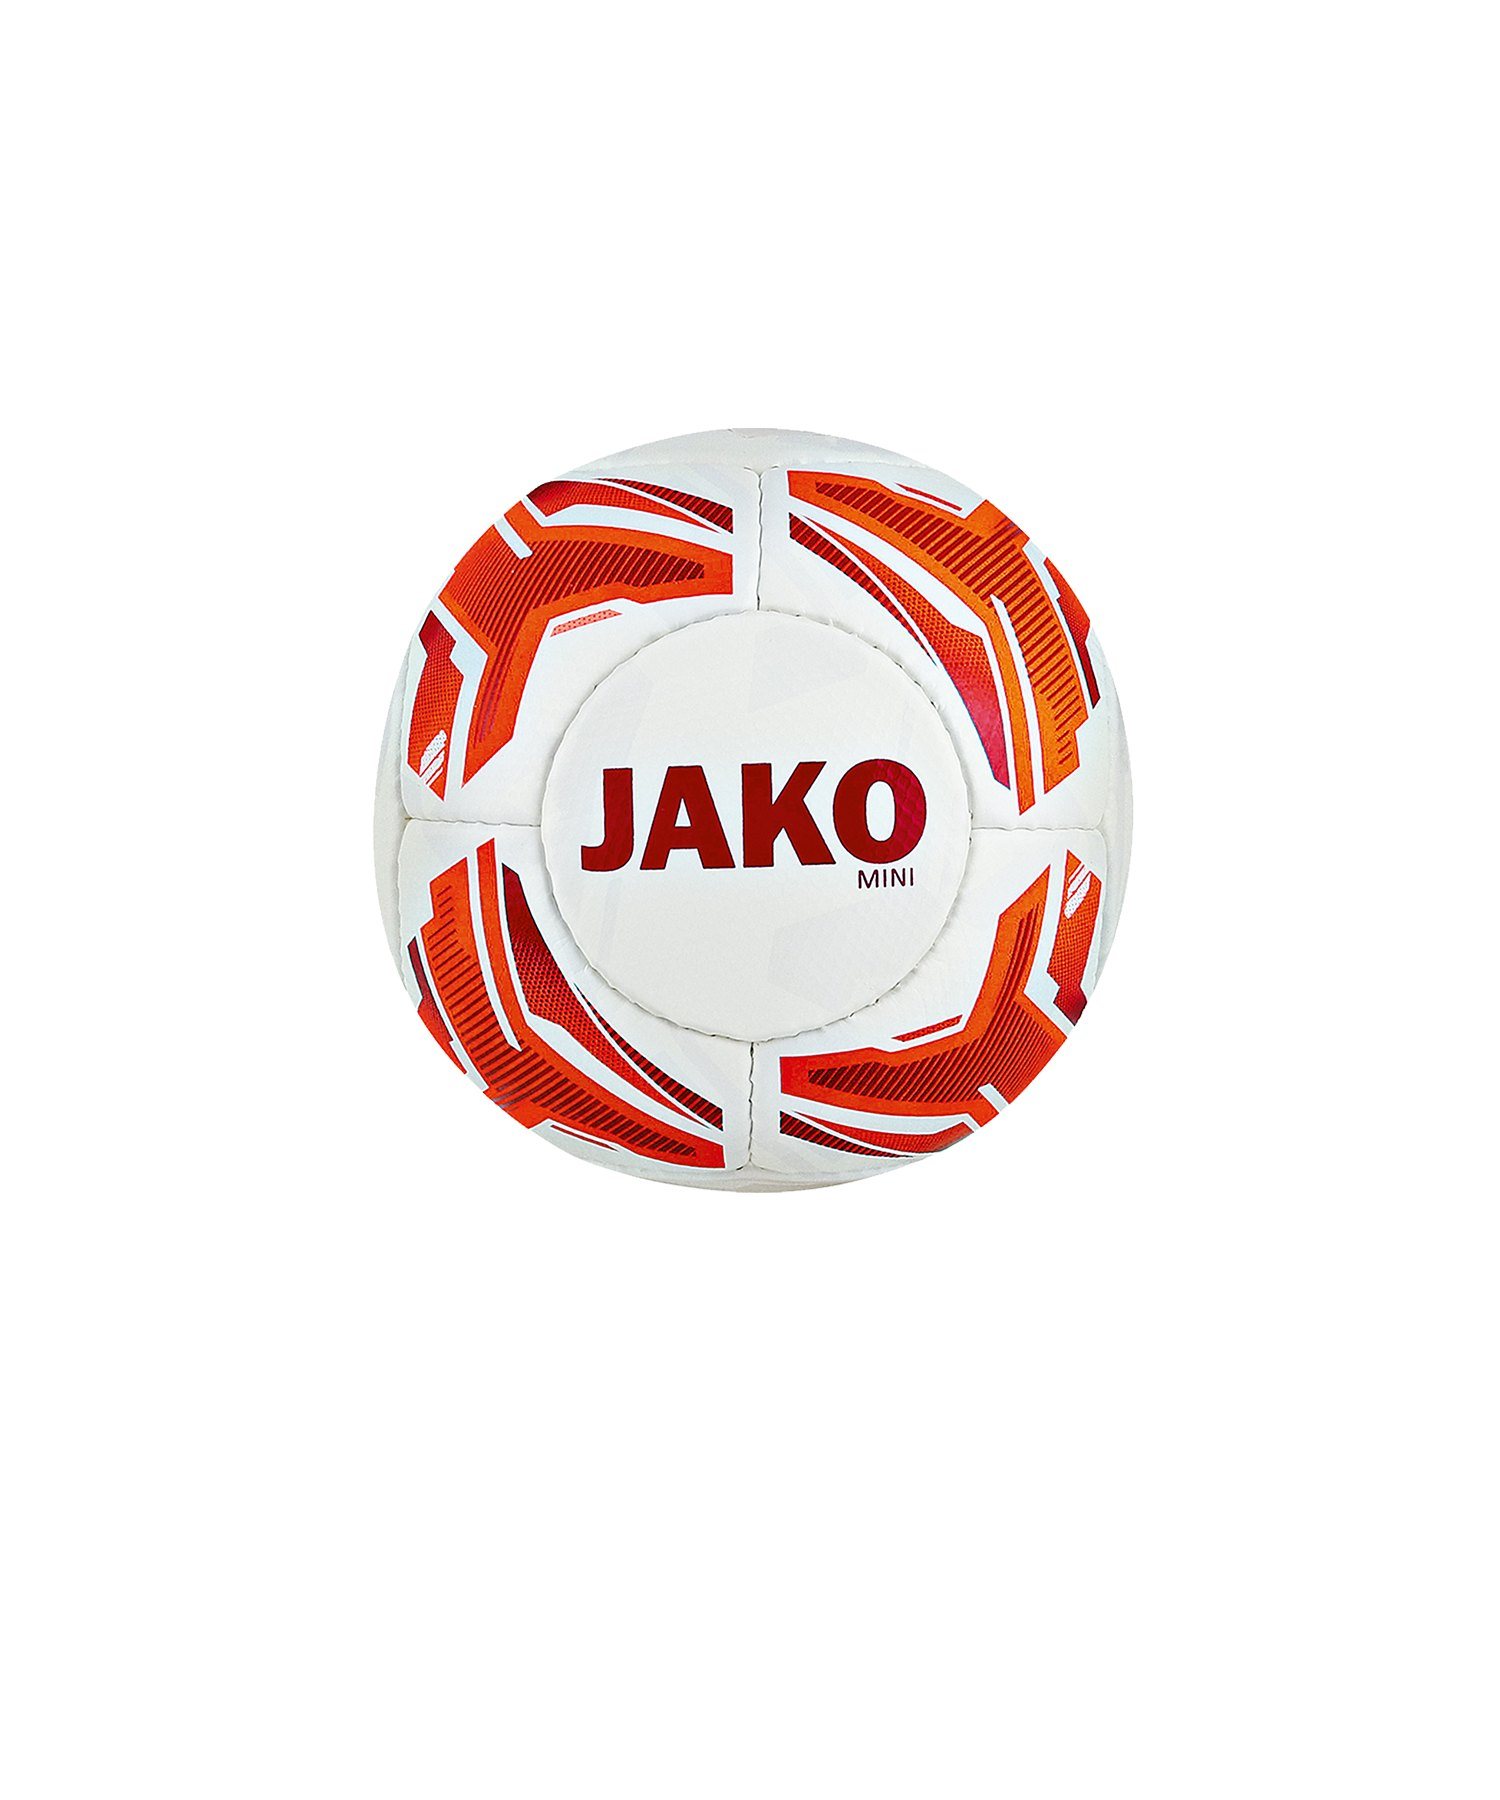 Jako Striker Miniball Weiss Orange Rot F19 - Orange